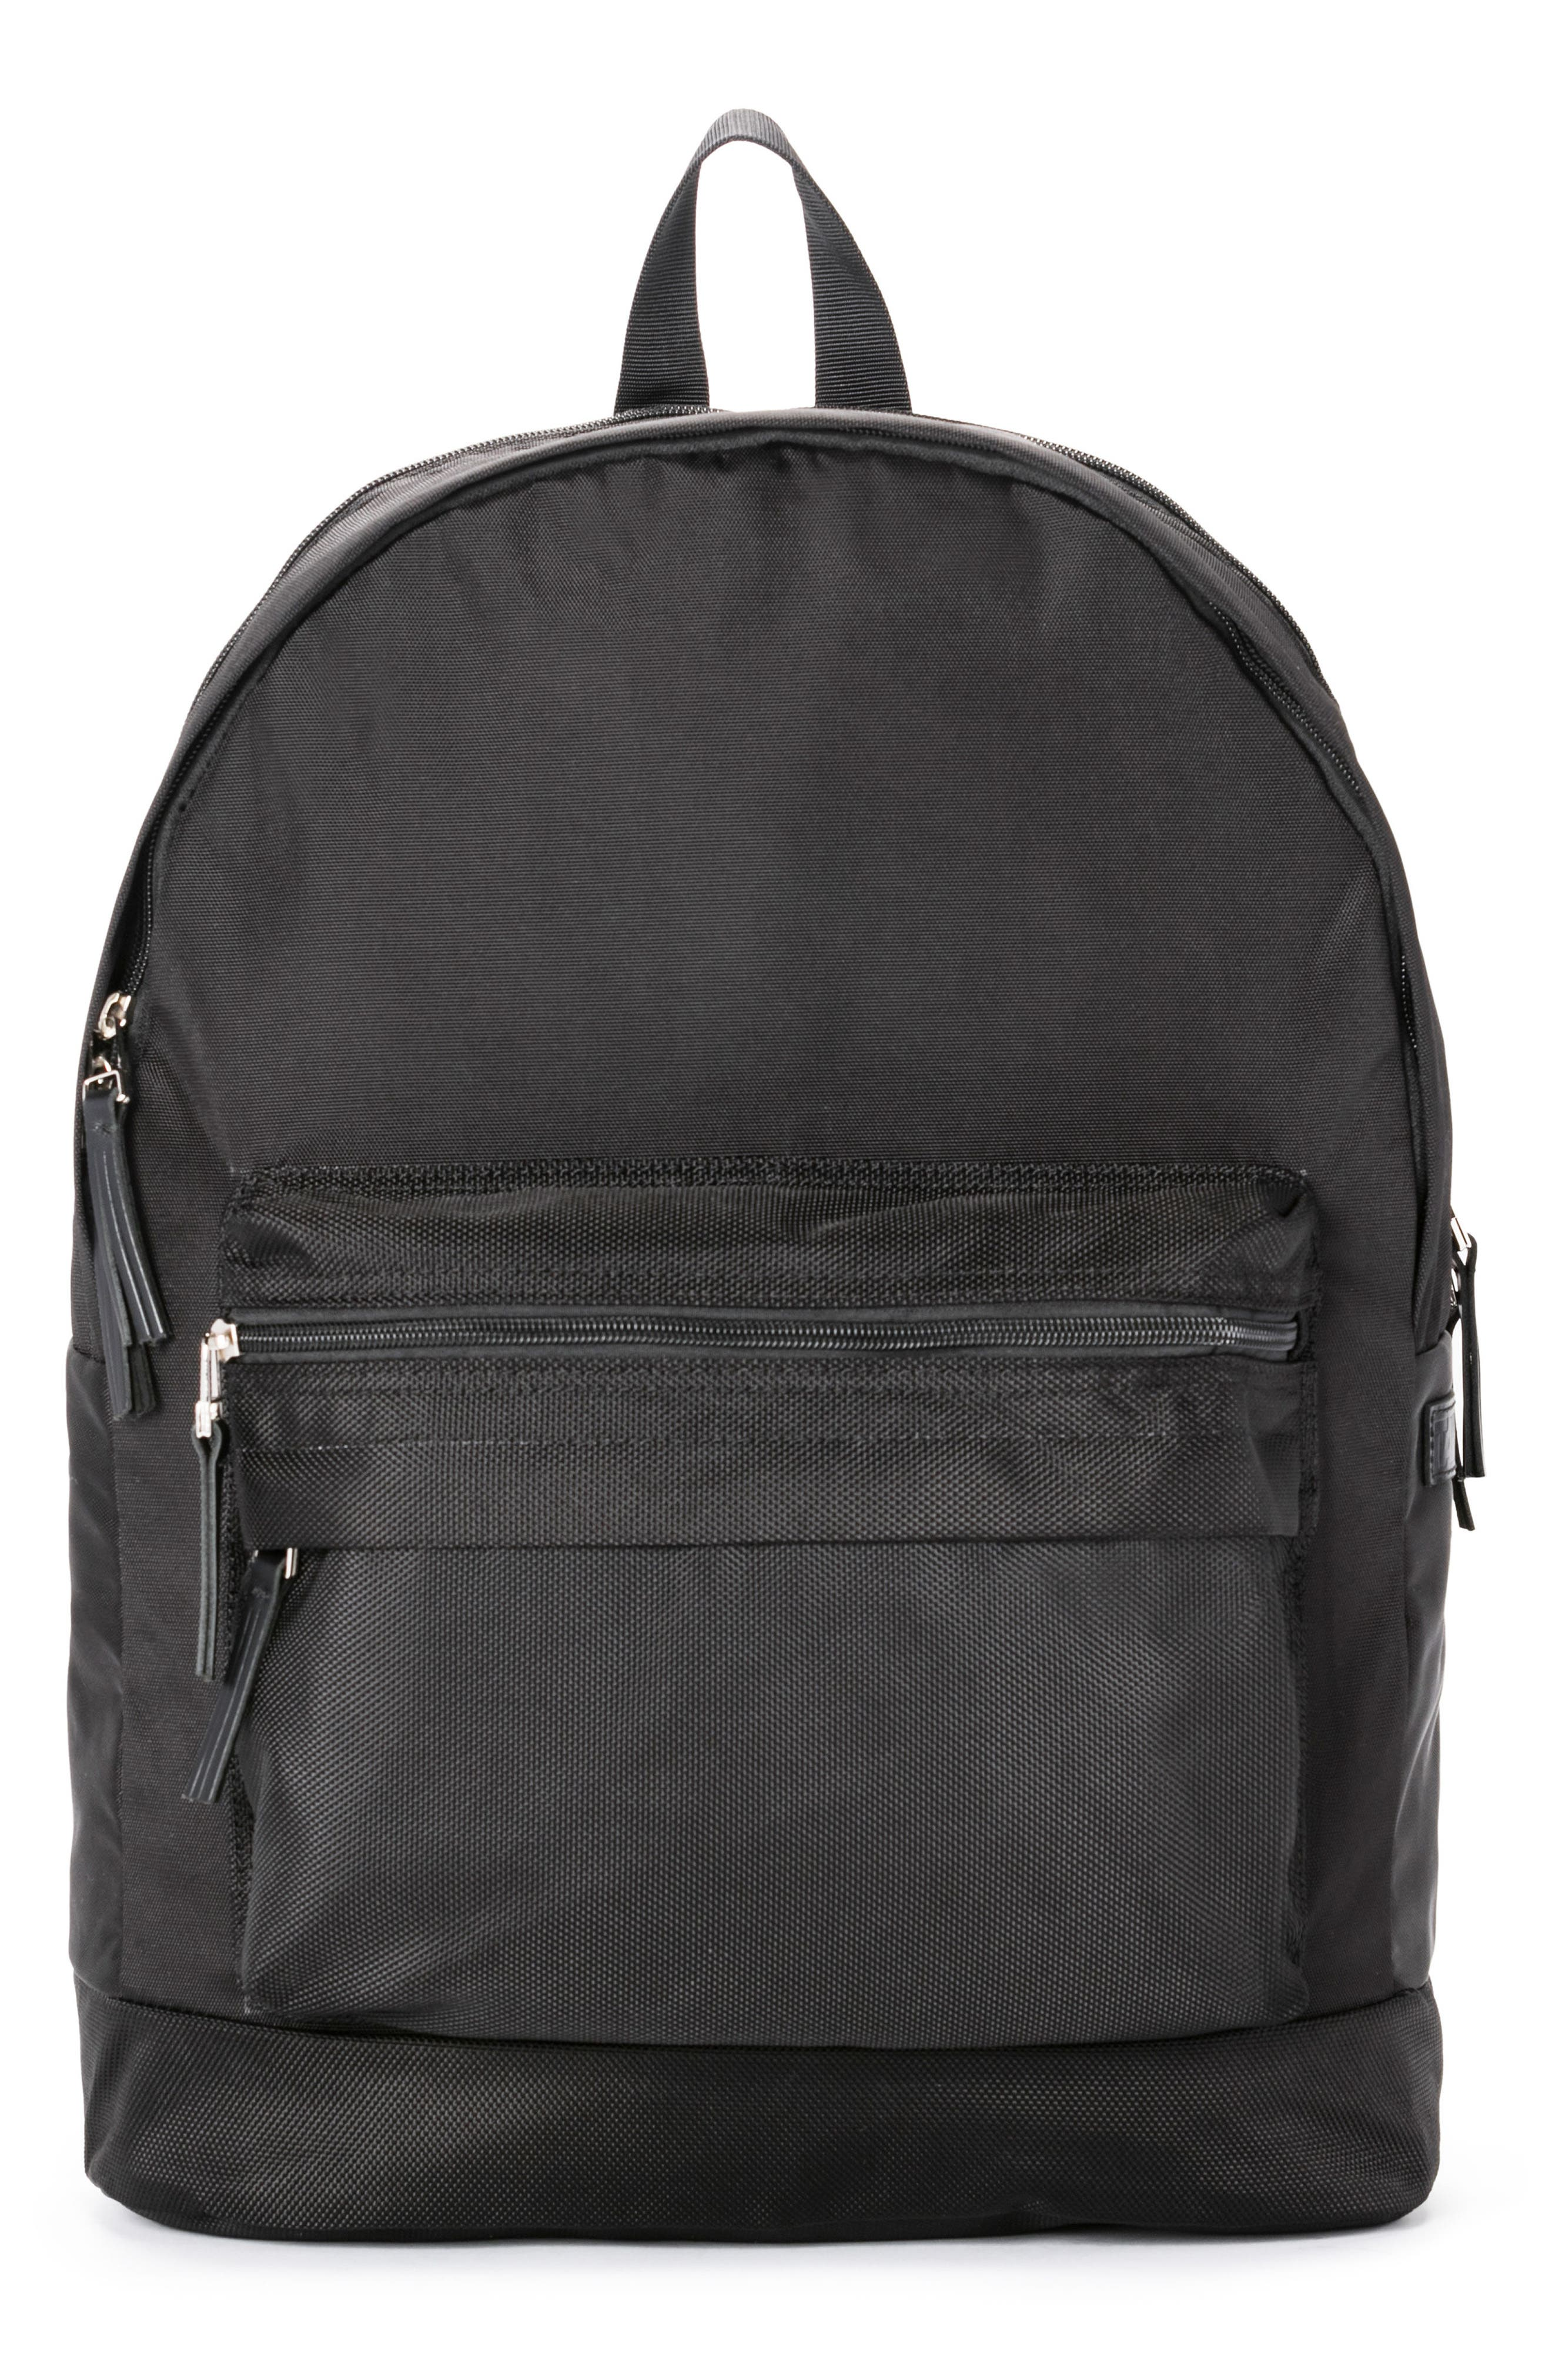 TAIKAN Lancer Backpack